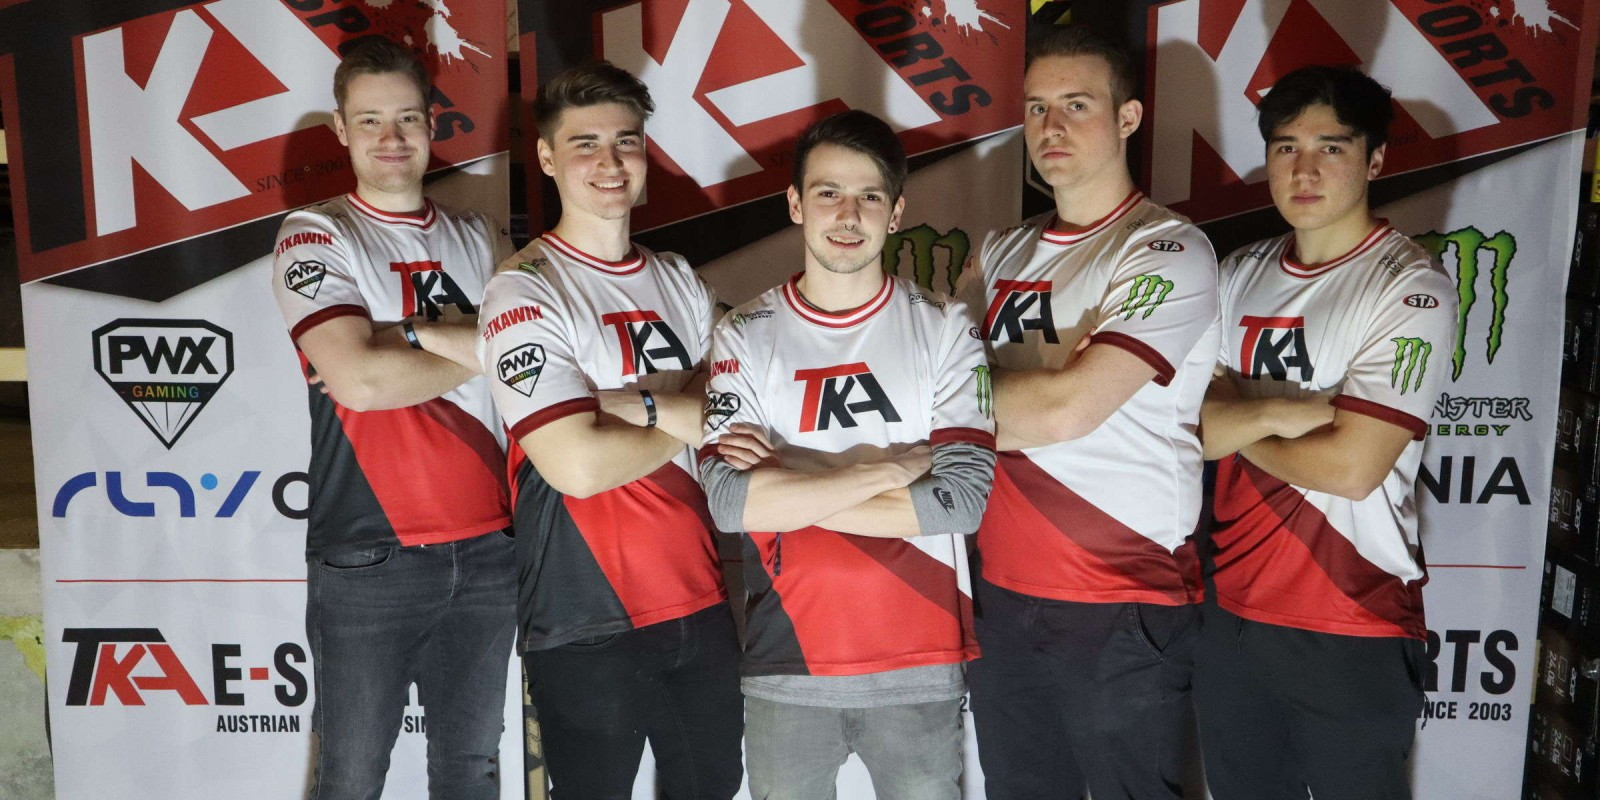 pictures from TKA E-Sports at the electronic sports festival in vienna